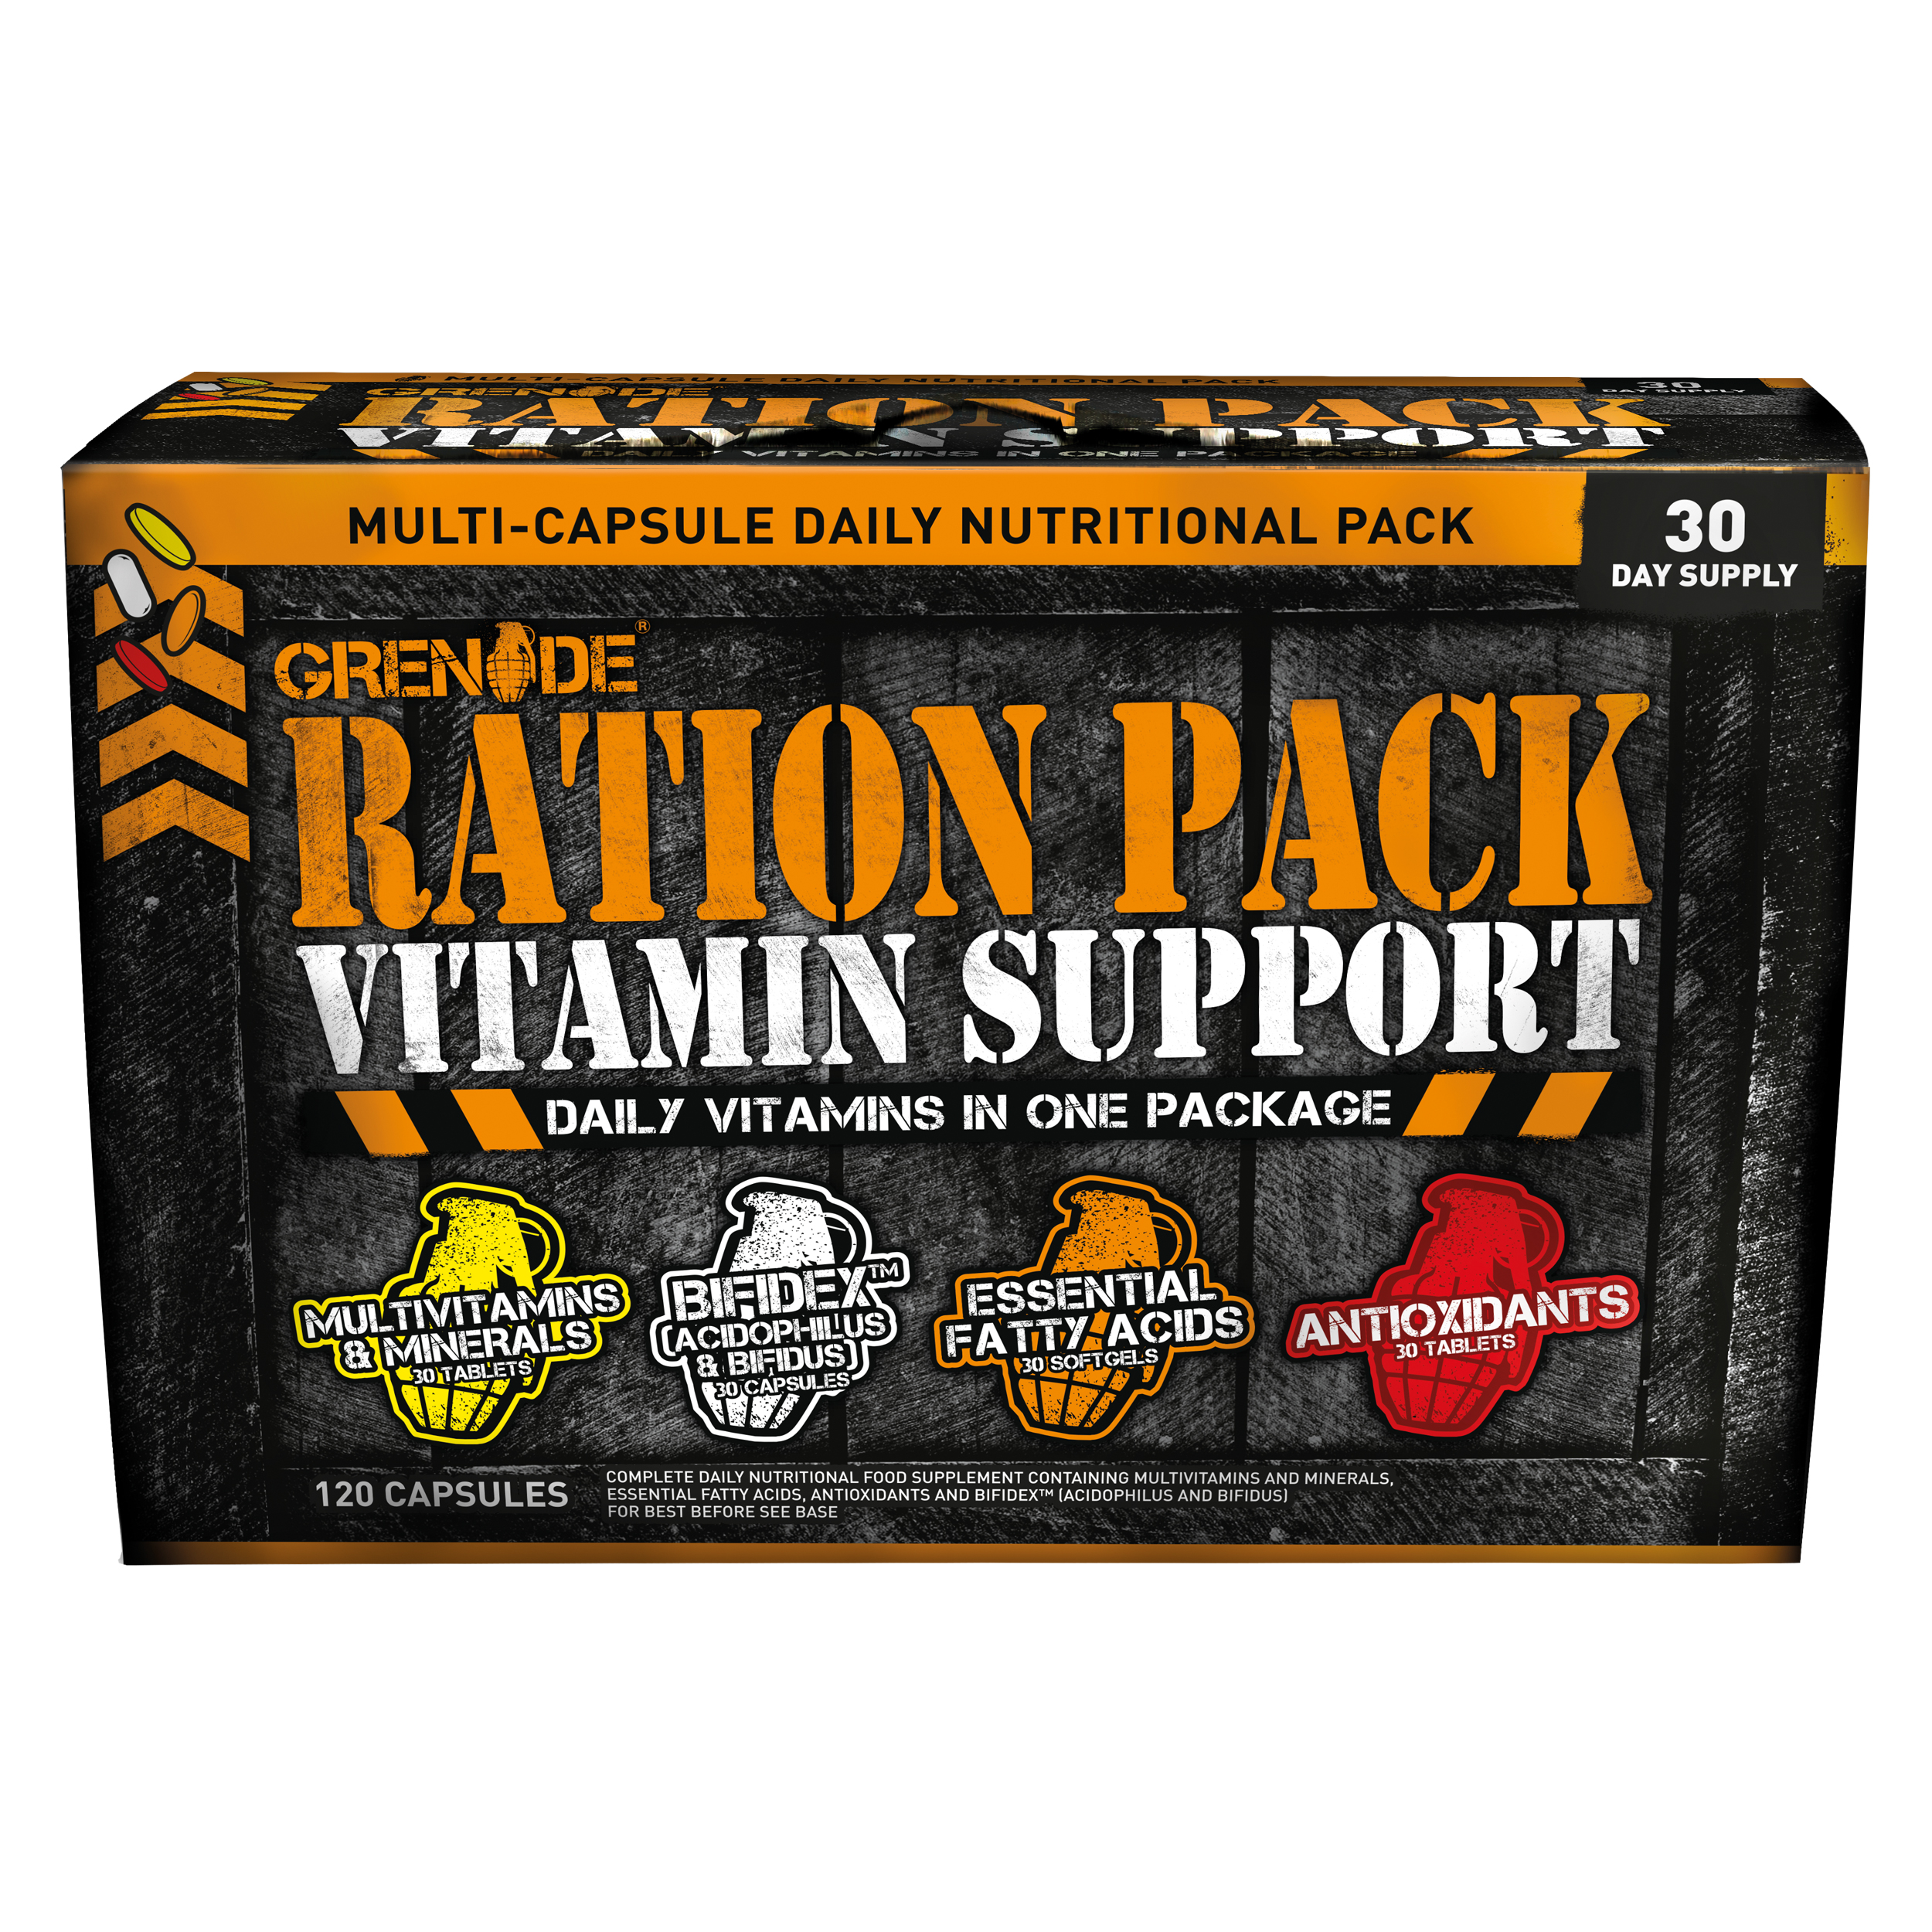 Grenade Ration Pack Vitamin Support (120 Capsules) | Misc. Nutrition